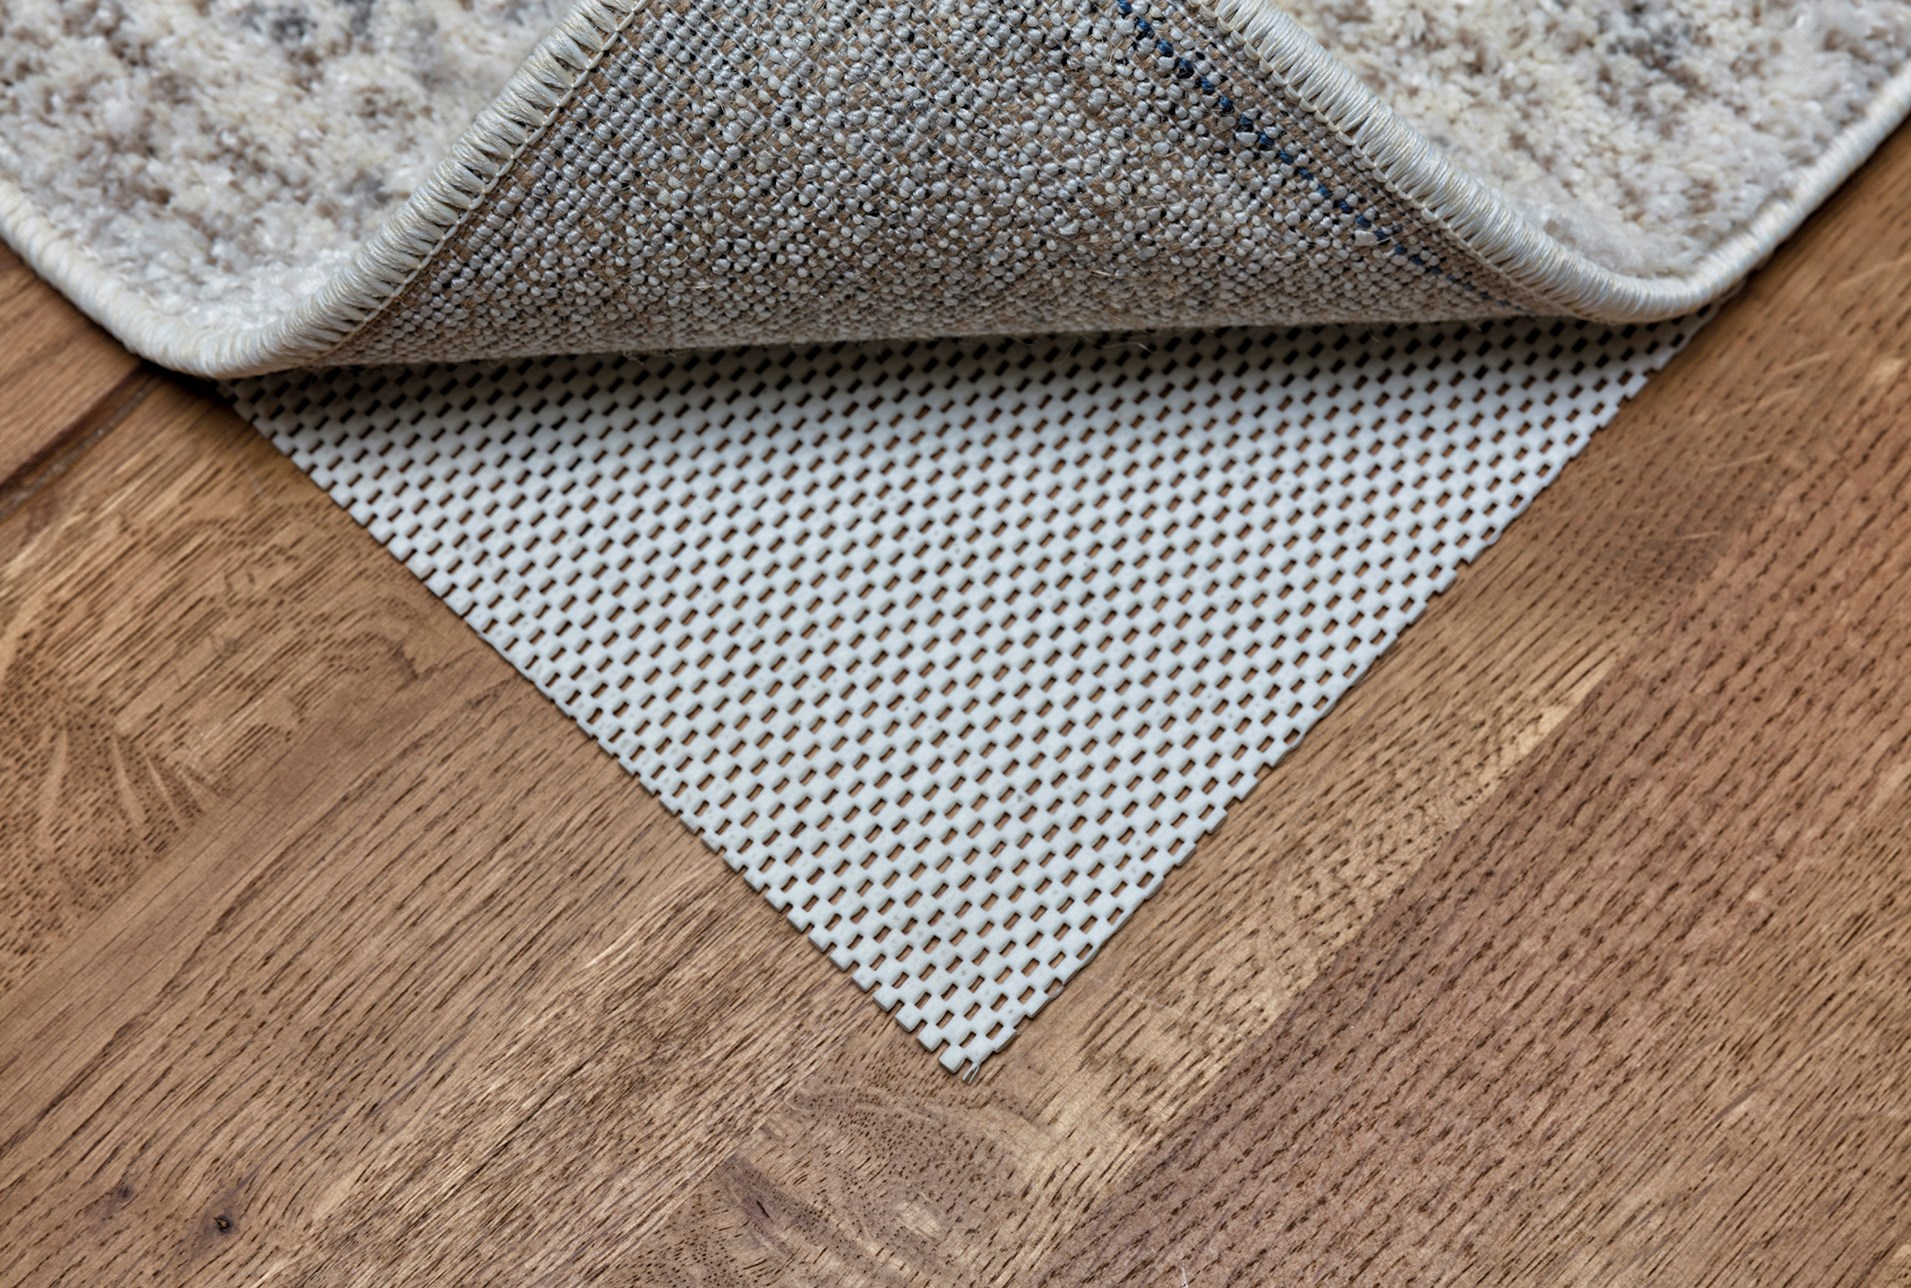 8x11 Rug Pad Comfort Grip Qty 1 Has Been Successfully Added To Your Cart